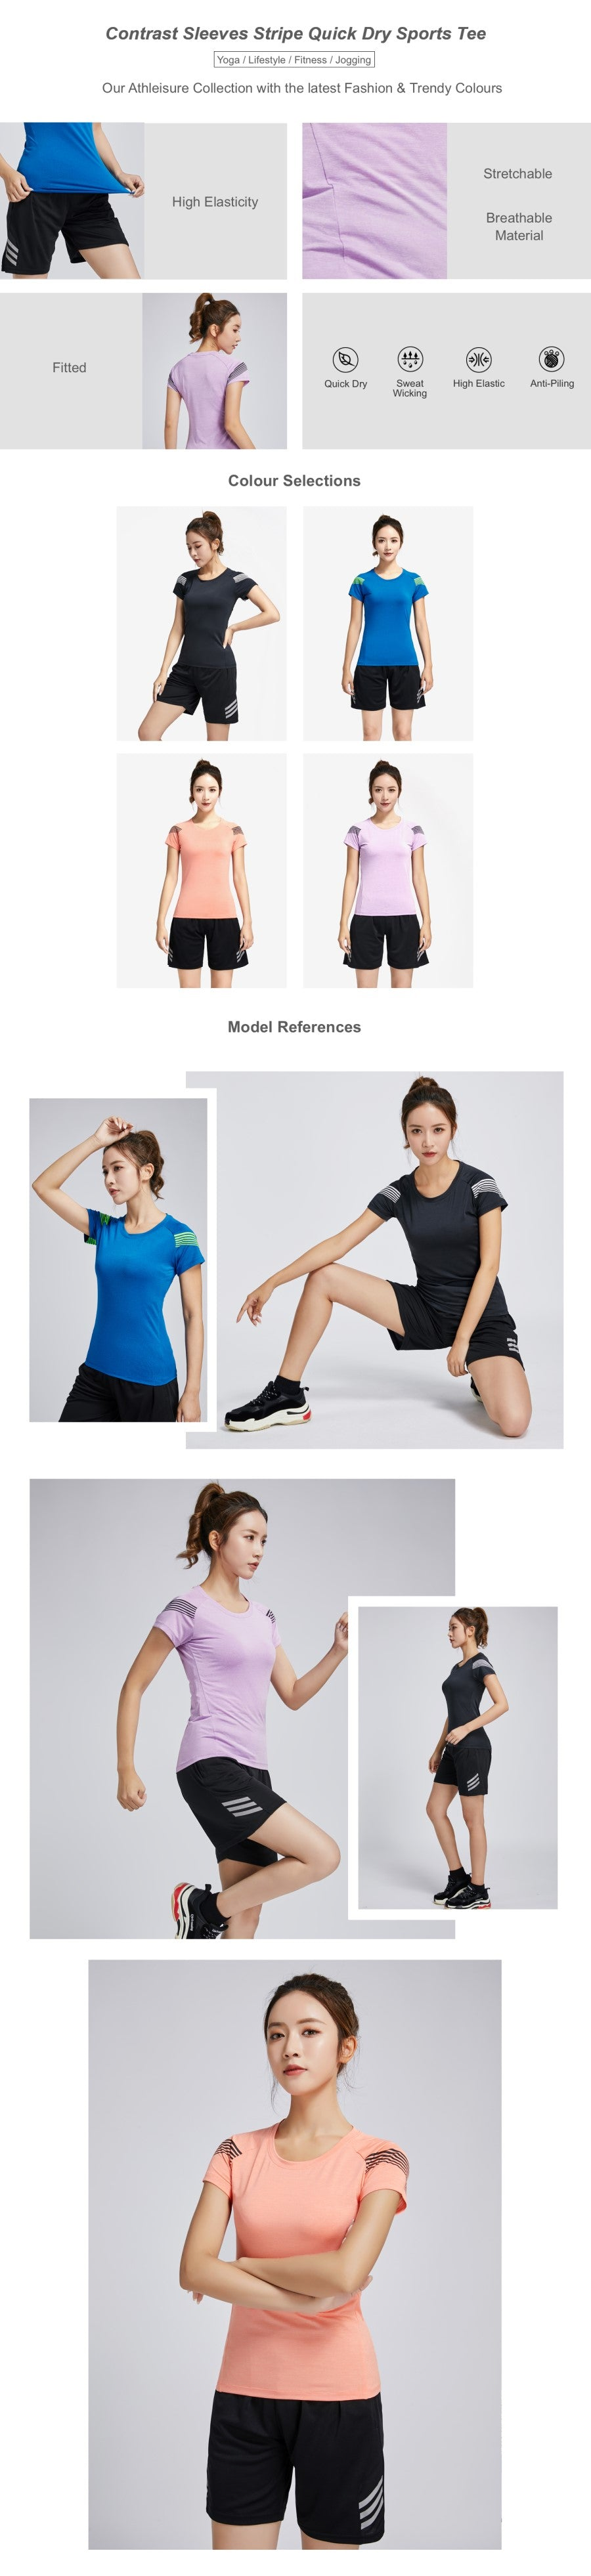 Contrast Sleeves Stripe Quick Dry Sports Tee